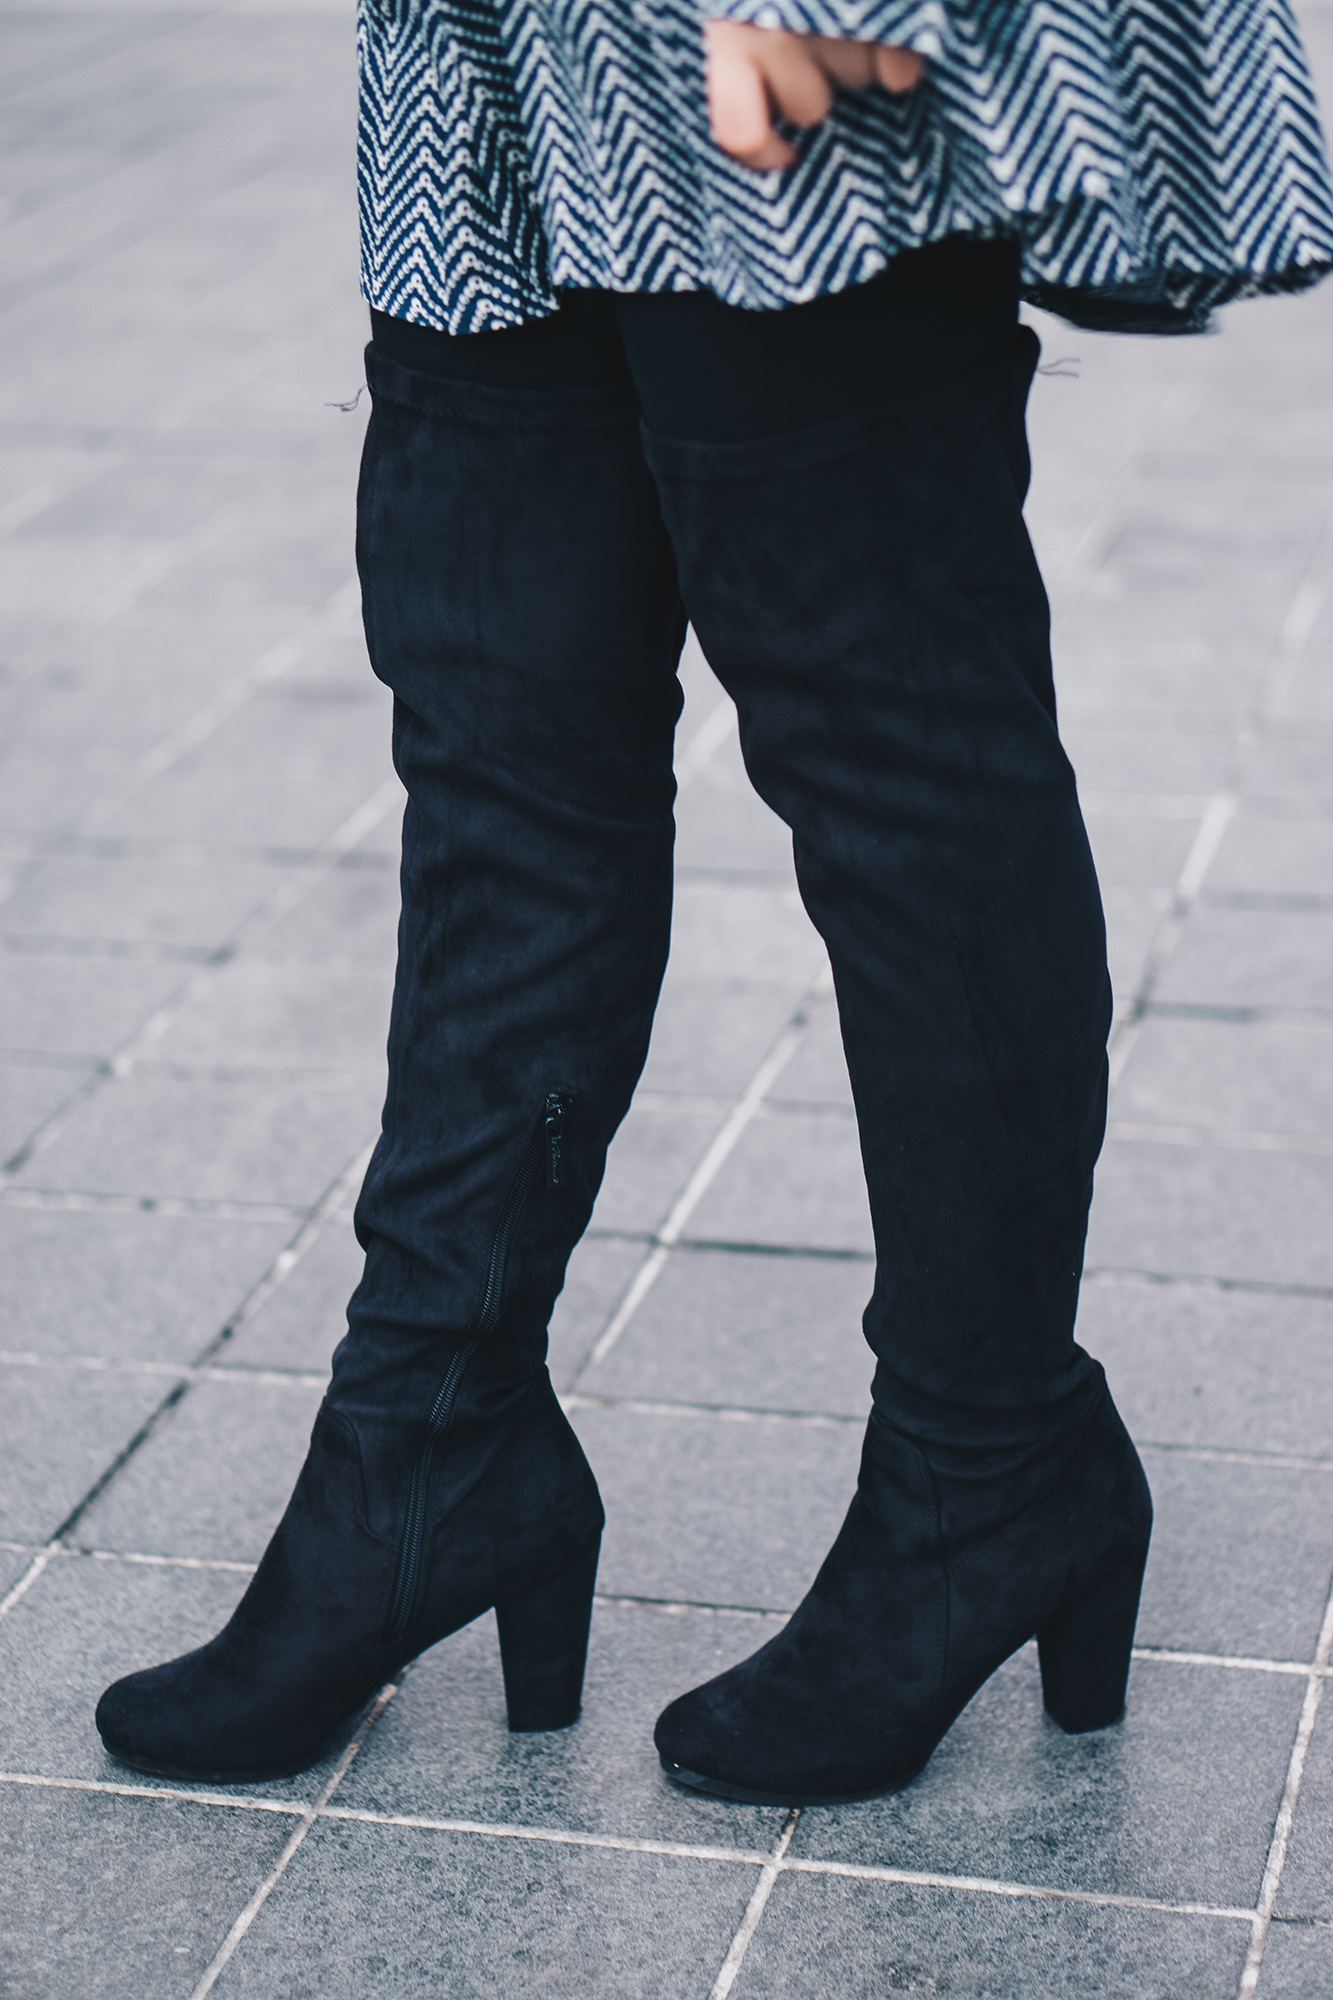 92d0fc73aa08 Over the knee boots ami club wear anotherside jpg 1333x2000 Club wear boots